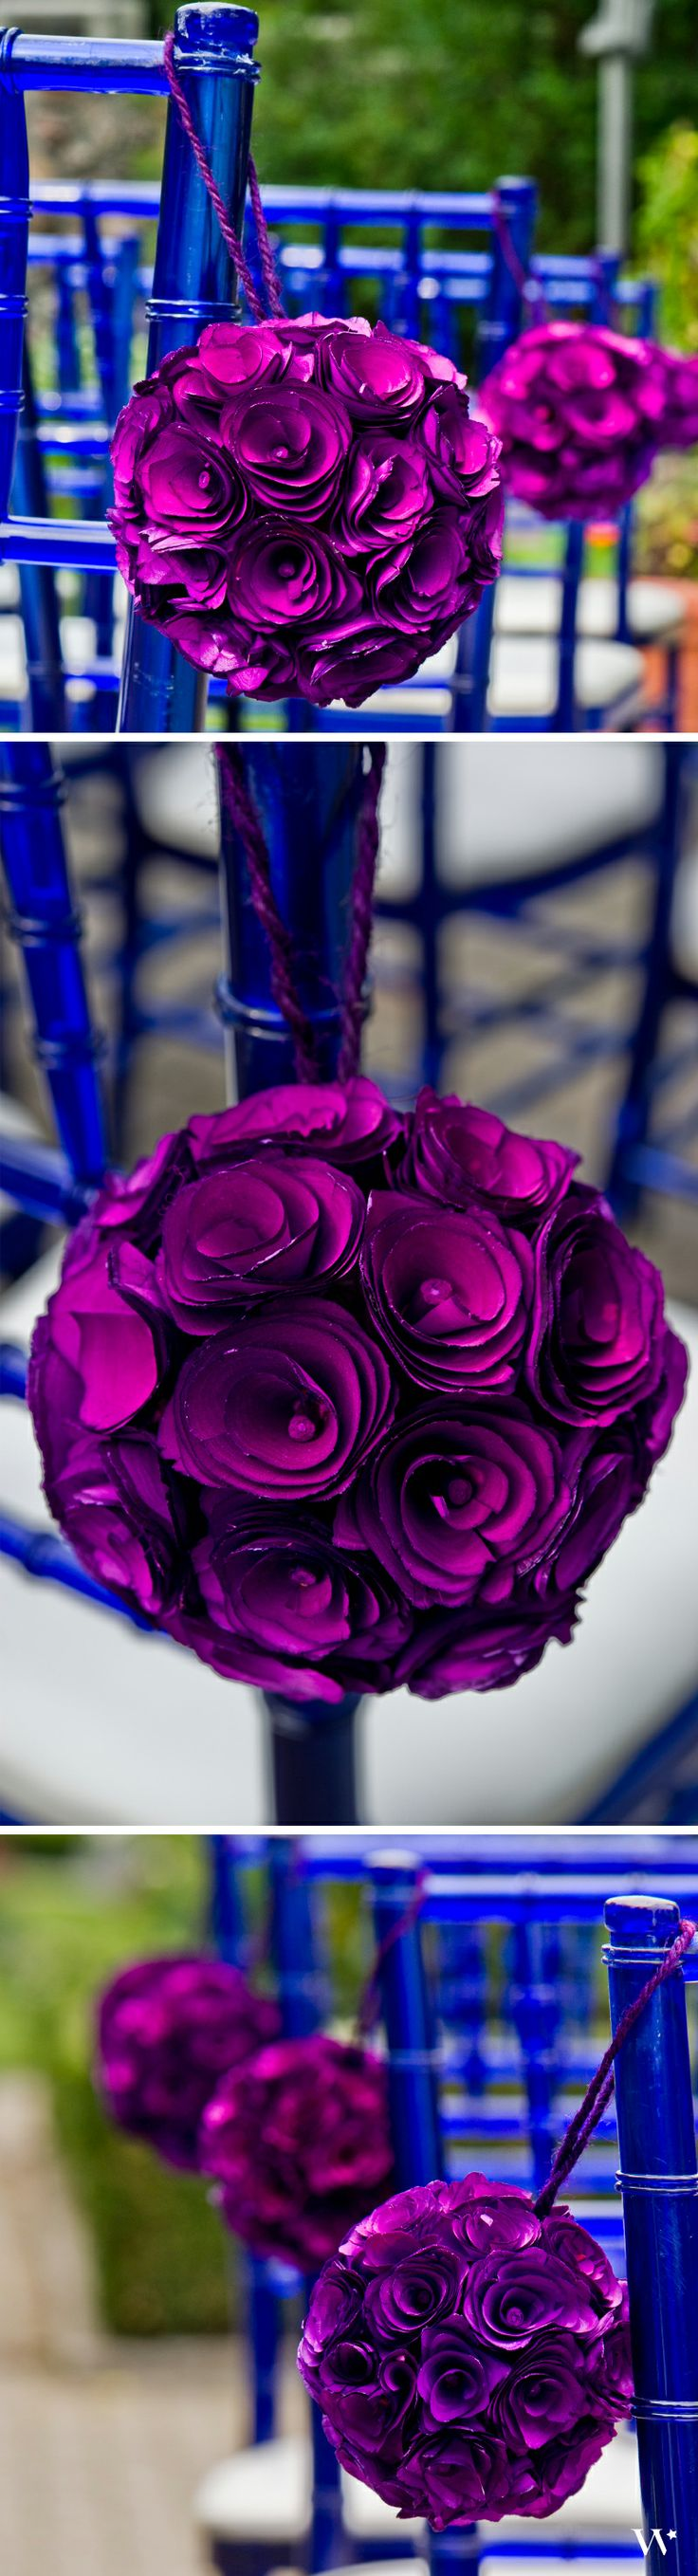 Lead your way down the aisle with grace and beauty when you style your ceremony with our Floral Pomander Balls: http://www.weddingstar.com/product/floral-pomander-ball-made-with-wood-curls